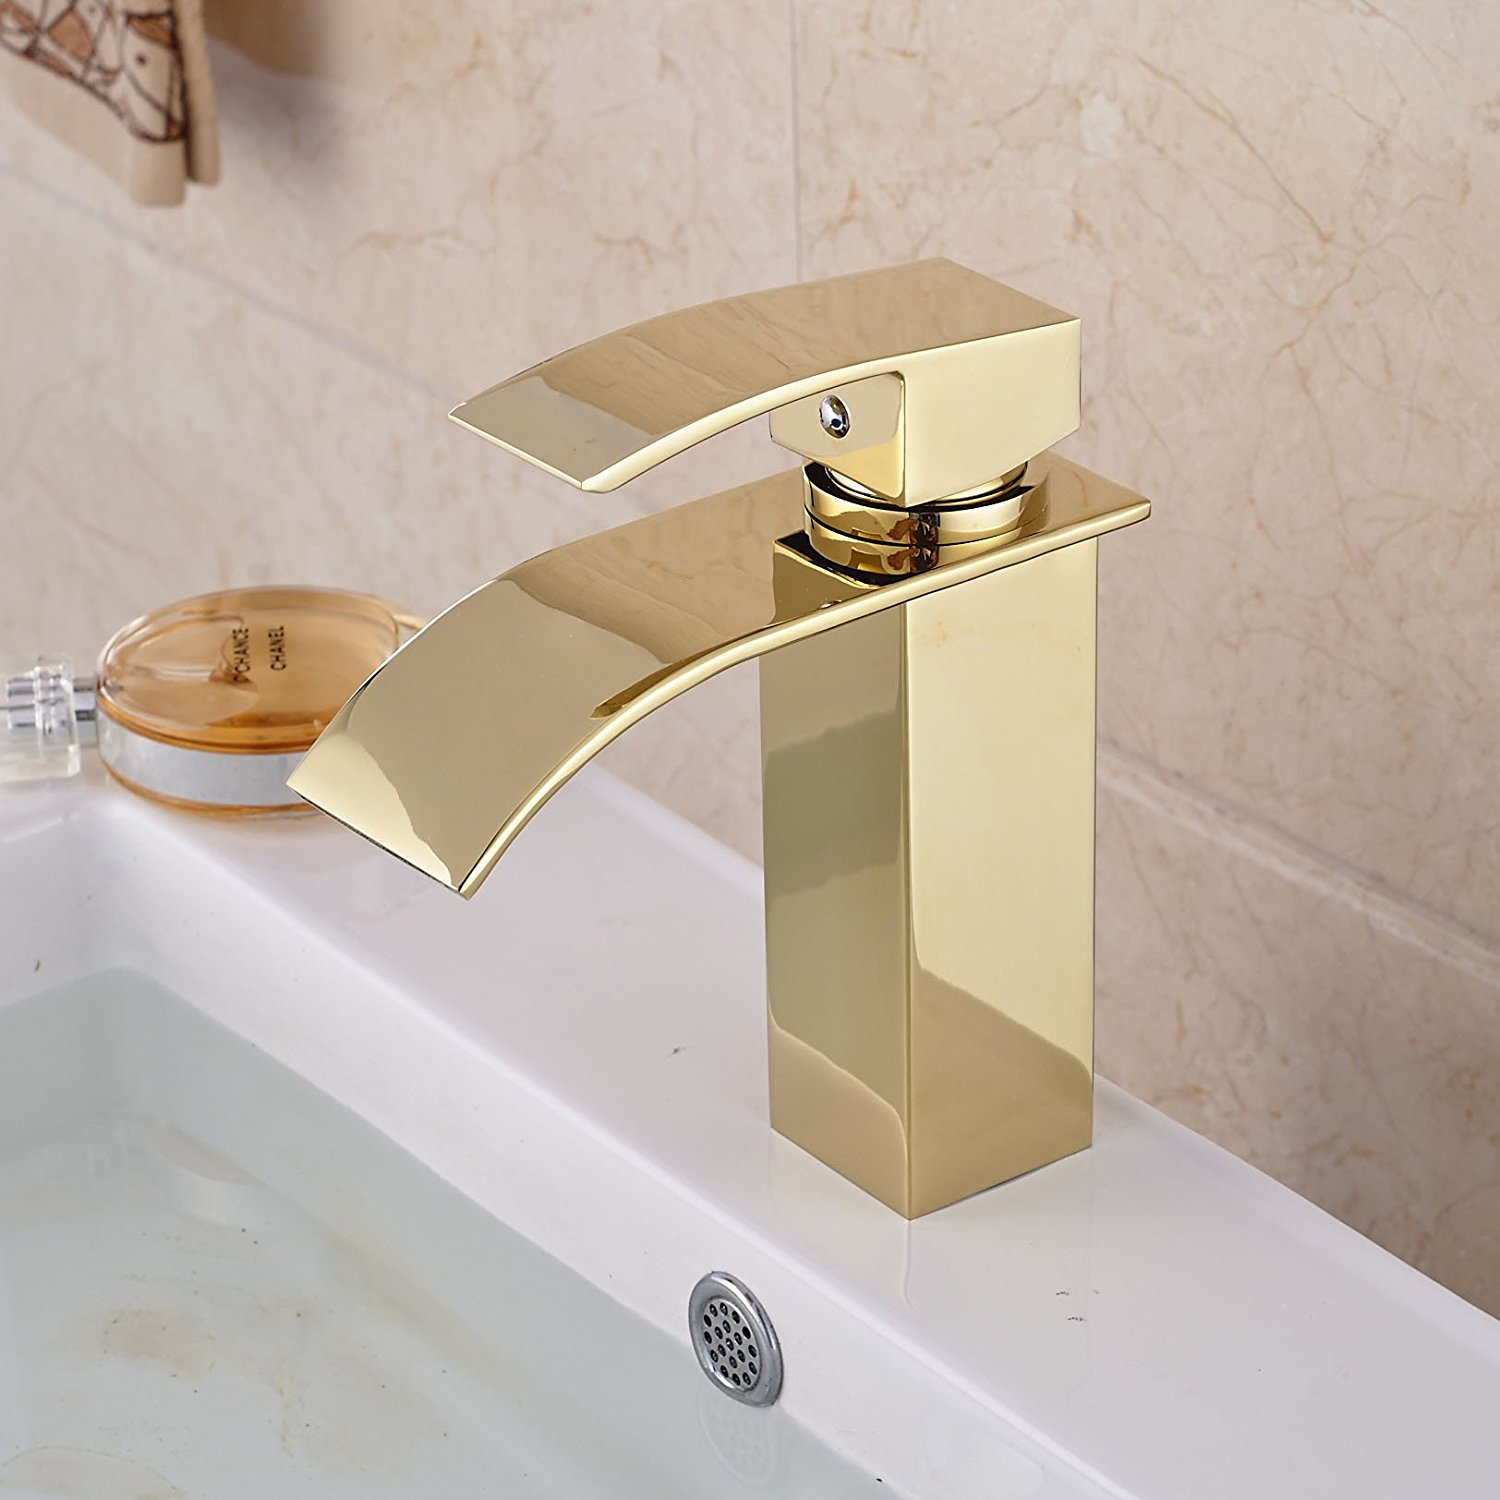 choosing image of faucet elite decor san berg bathtub handles handle